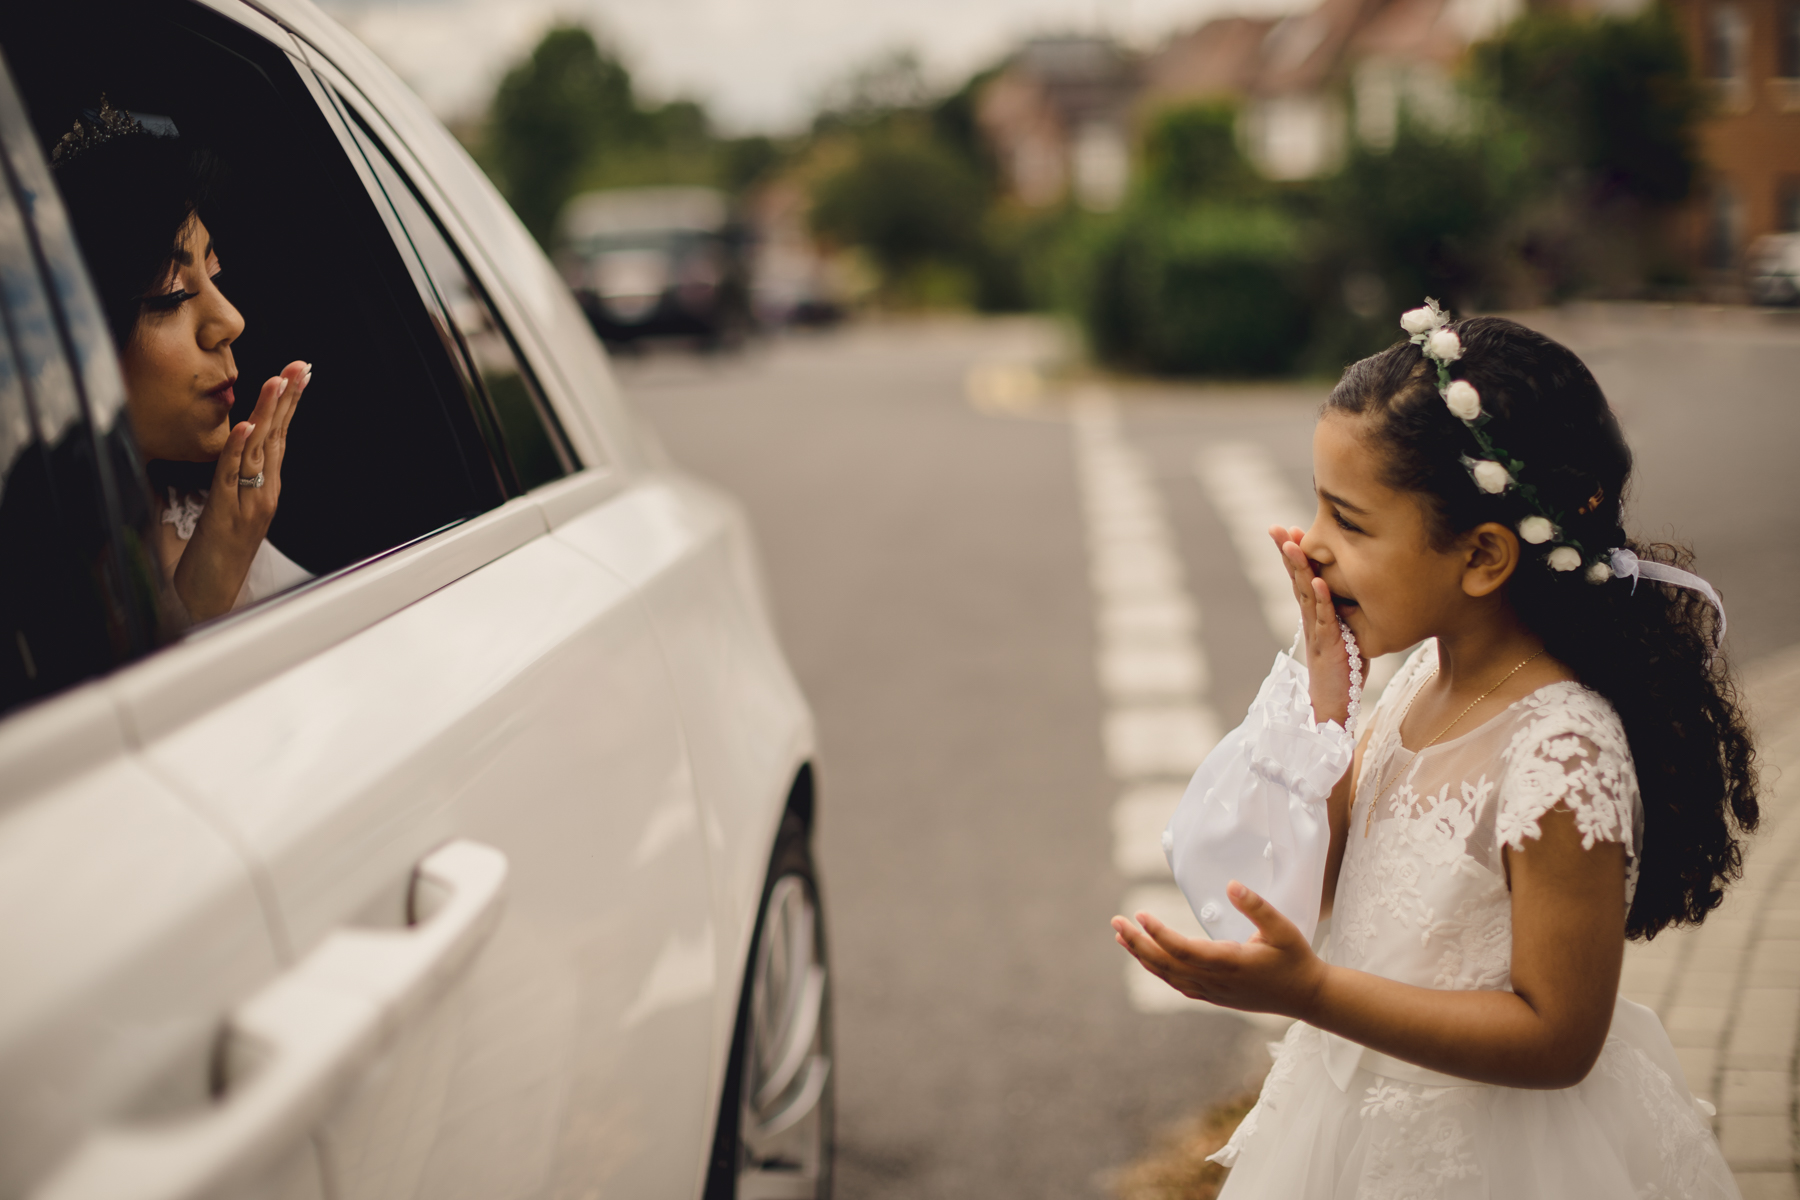 Chapel Wedding Photography in London | The bride in the car, en route to the church for her wedding ceremony